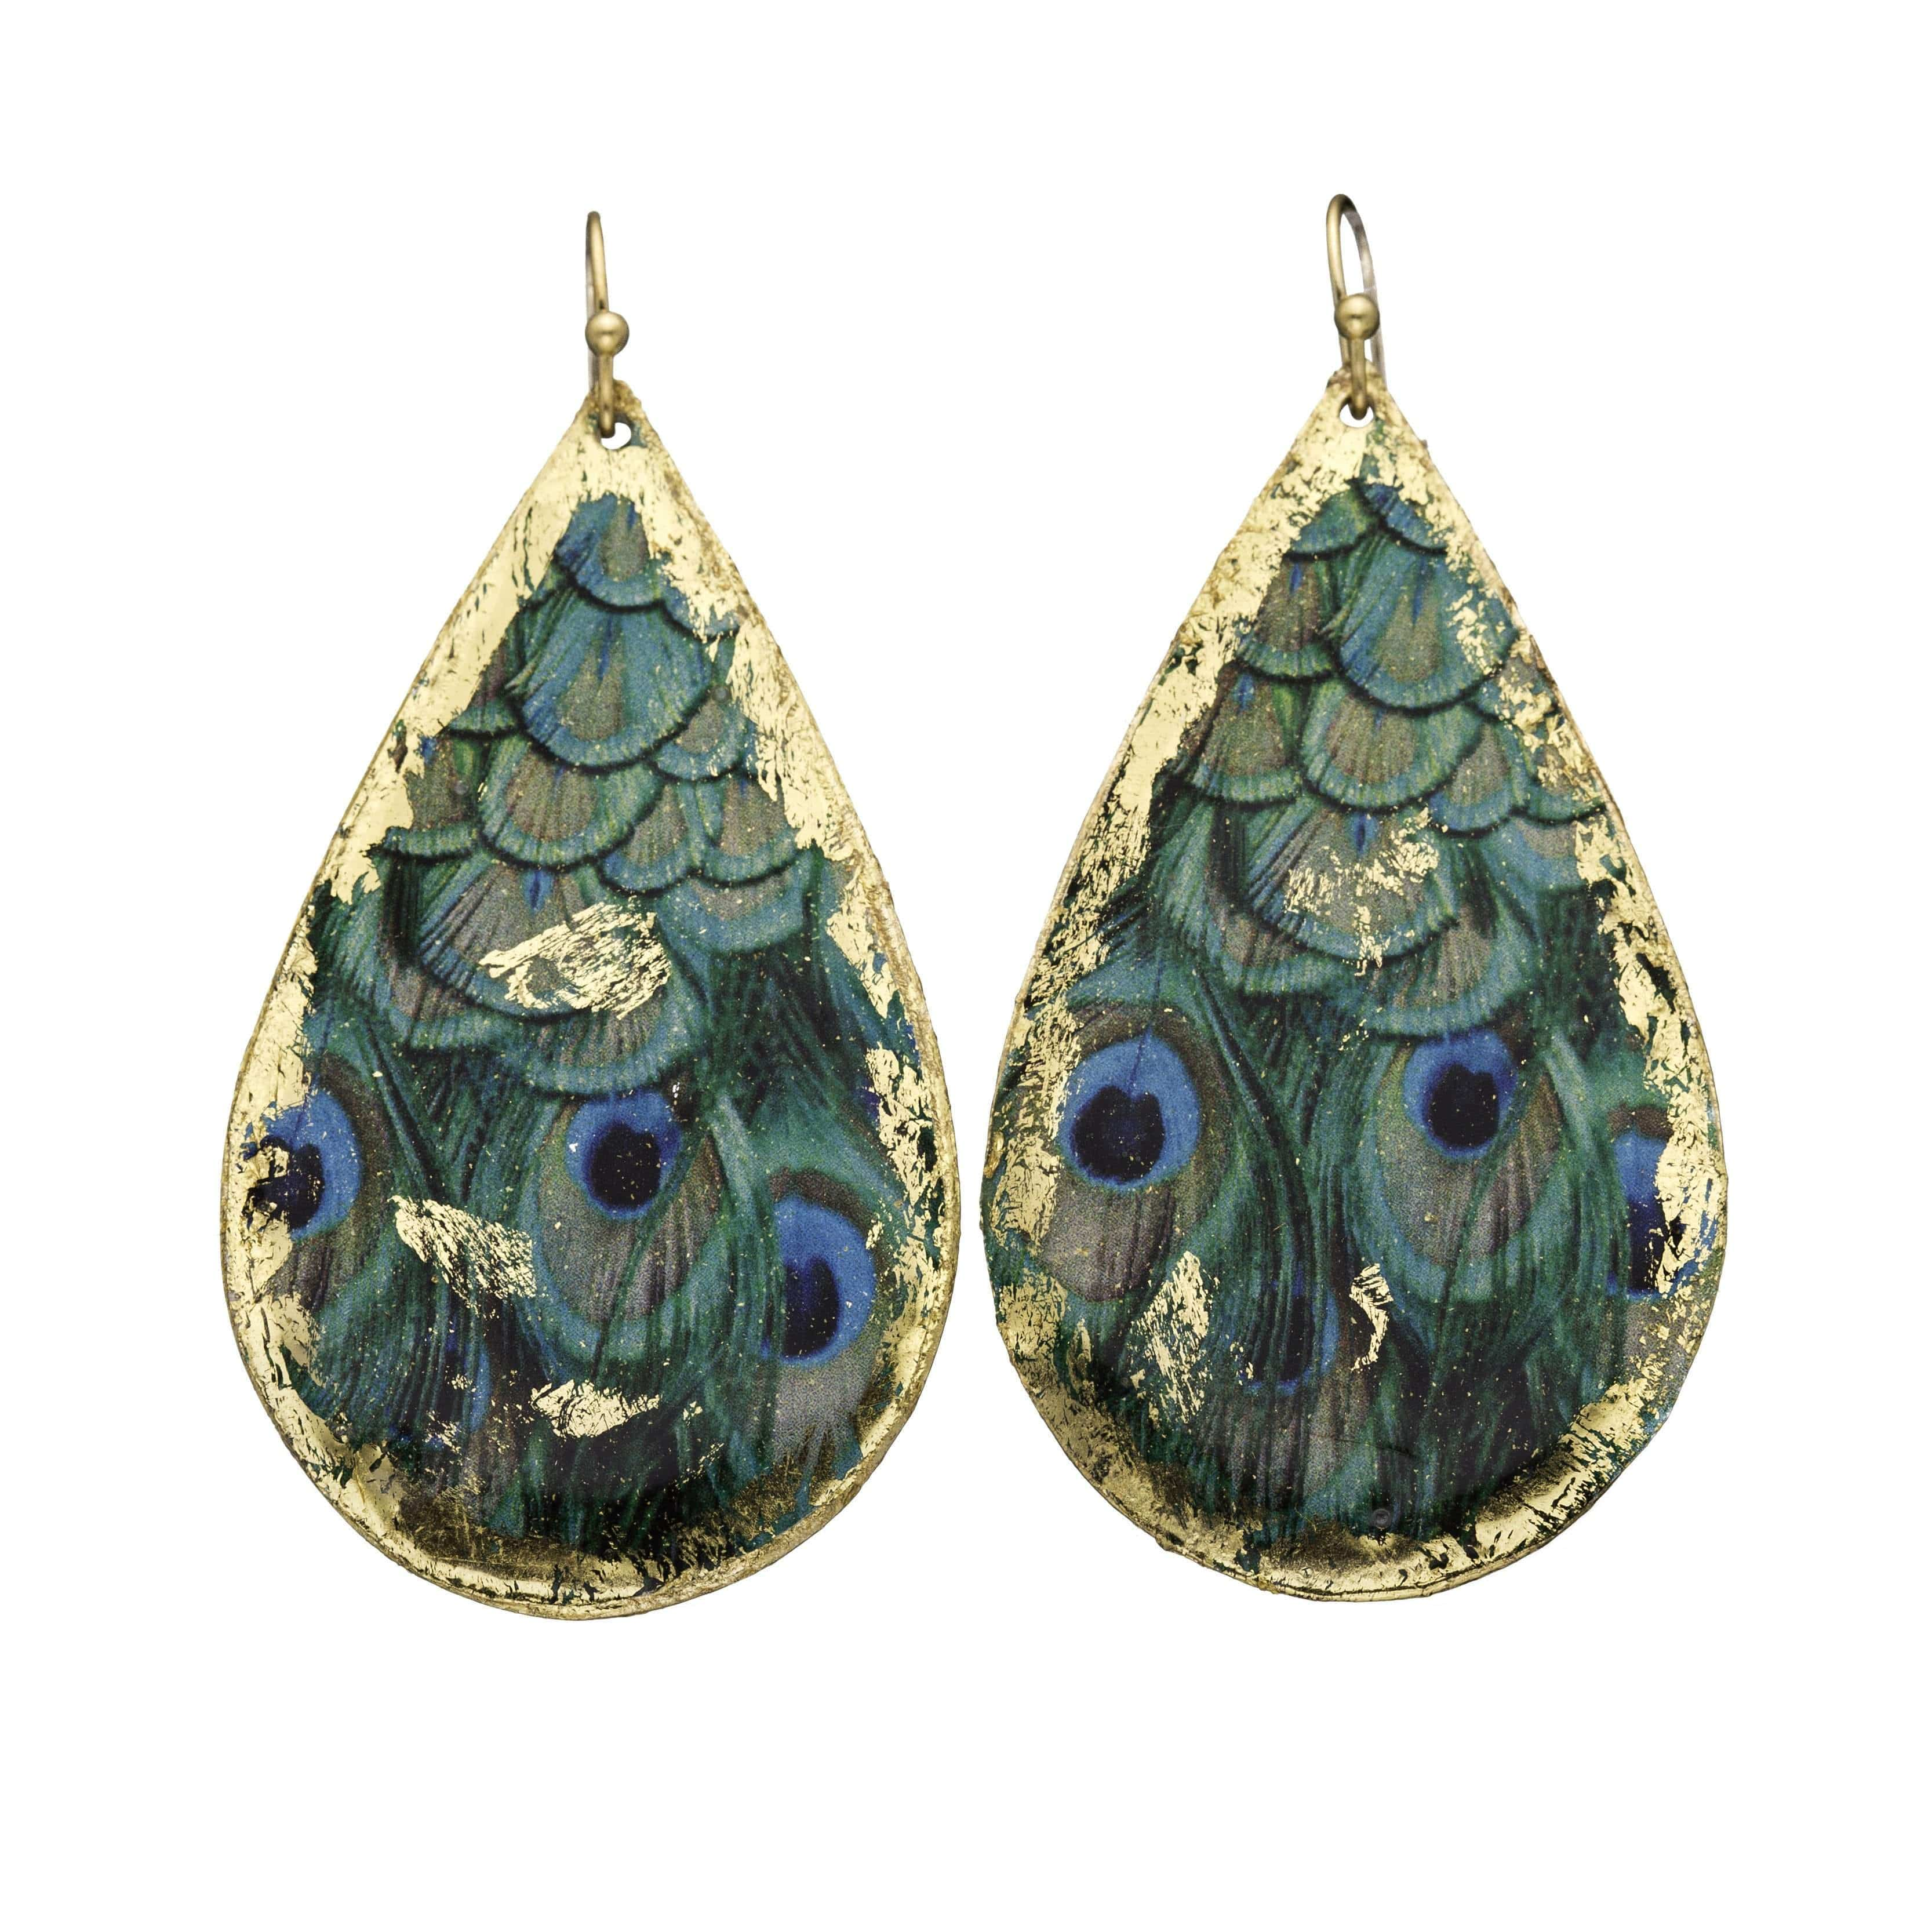 Feathered Peacock Gold Teardrop Earrings - GN408-Evocateur-Renee Taylor Gallery